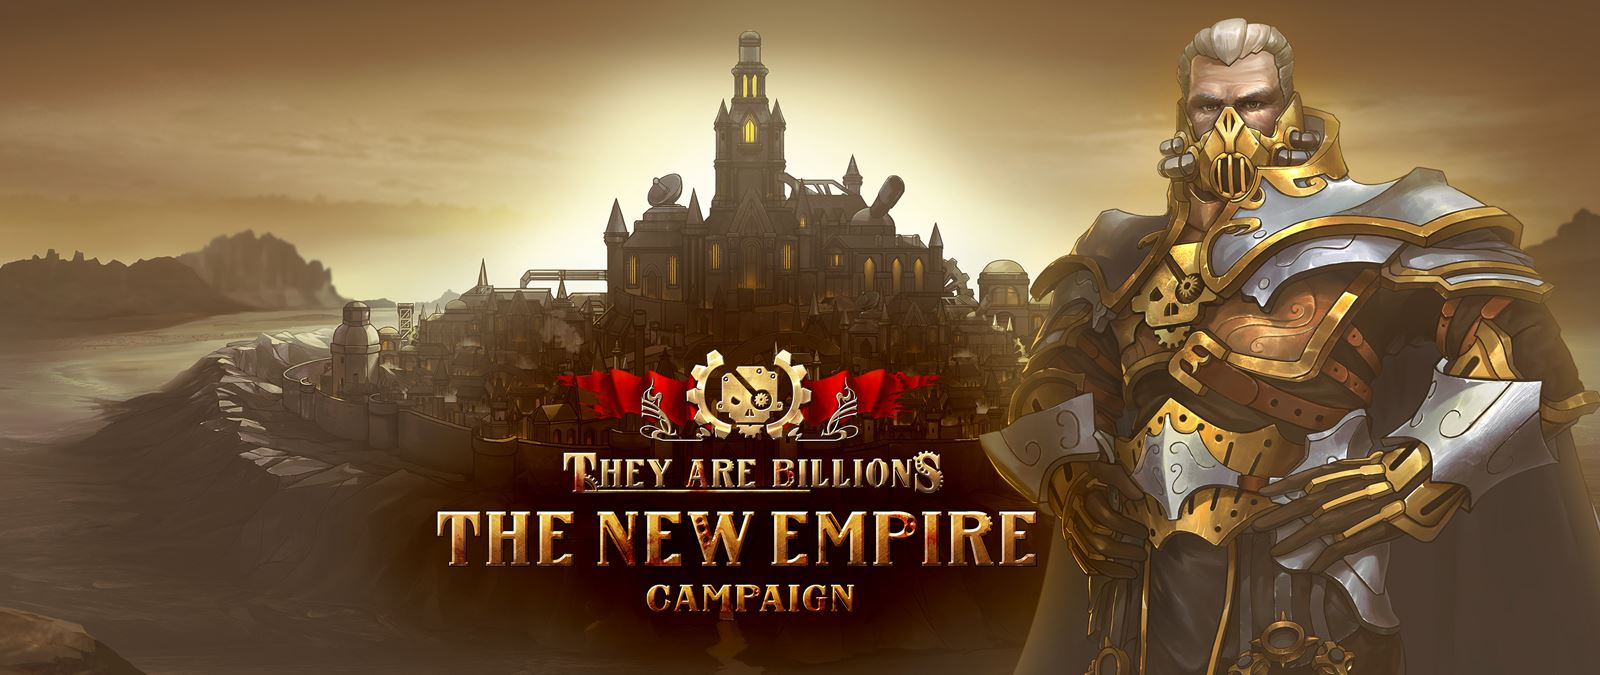 they-are-billions-1.0